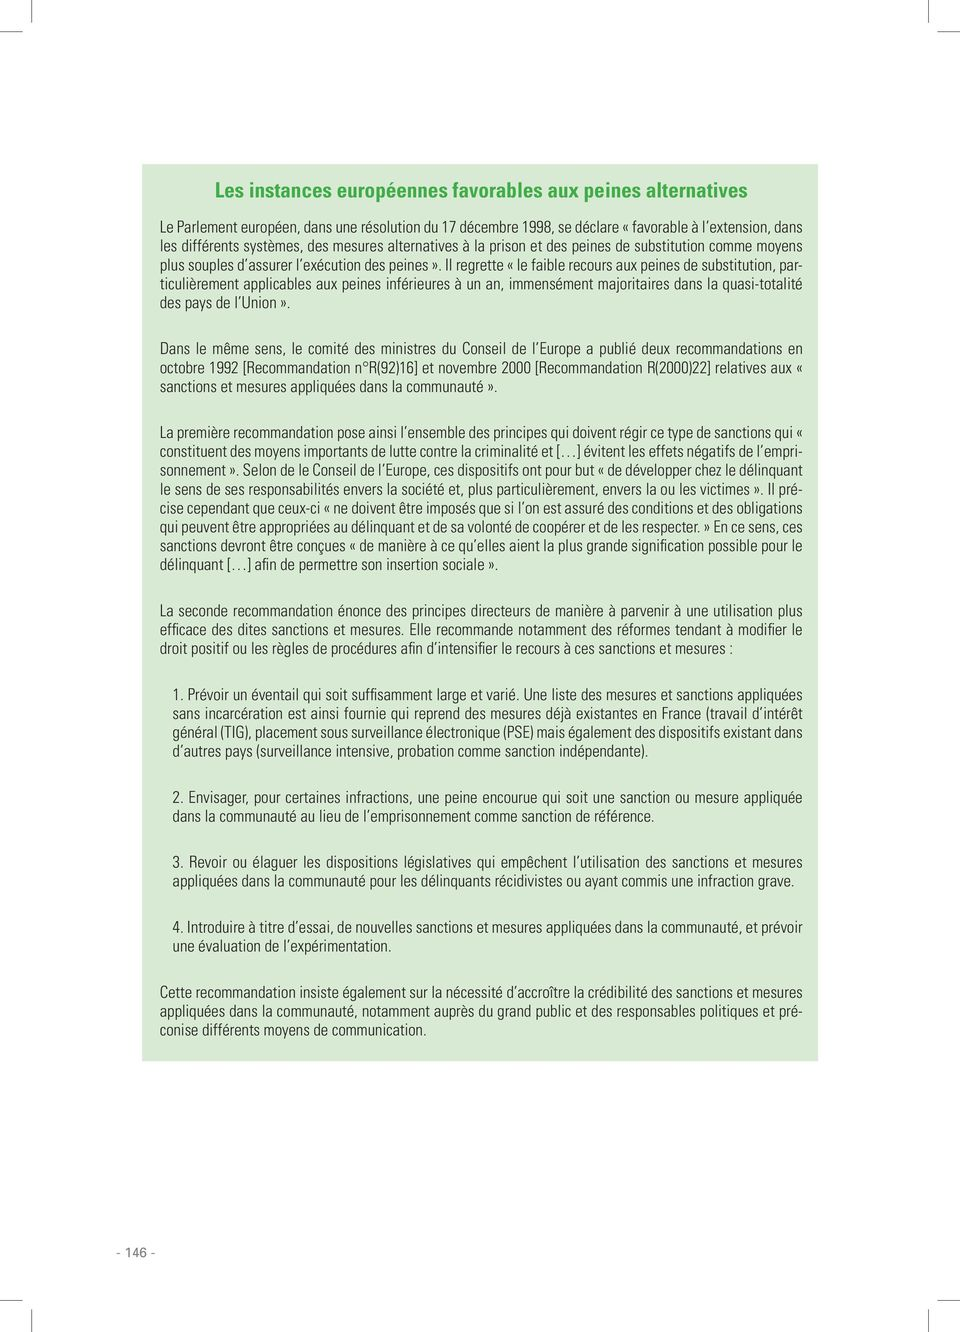 Les mesures alternatives l incarc ration pdf for Chambre commerciale 13 octobre 1992